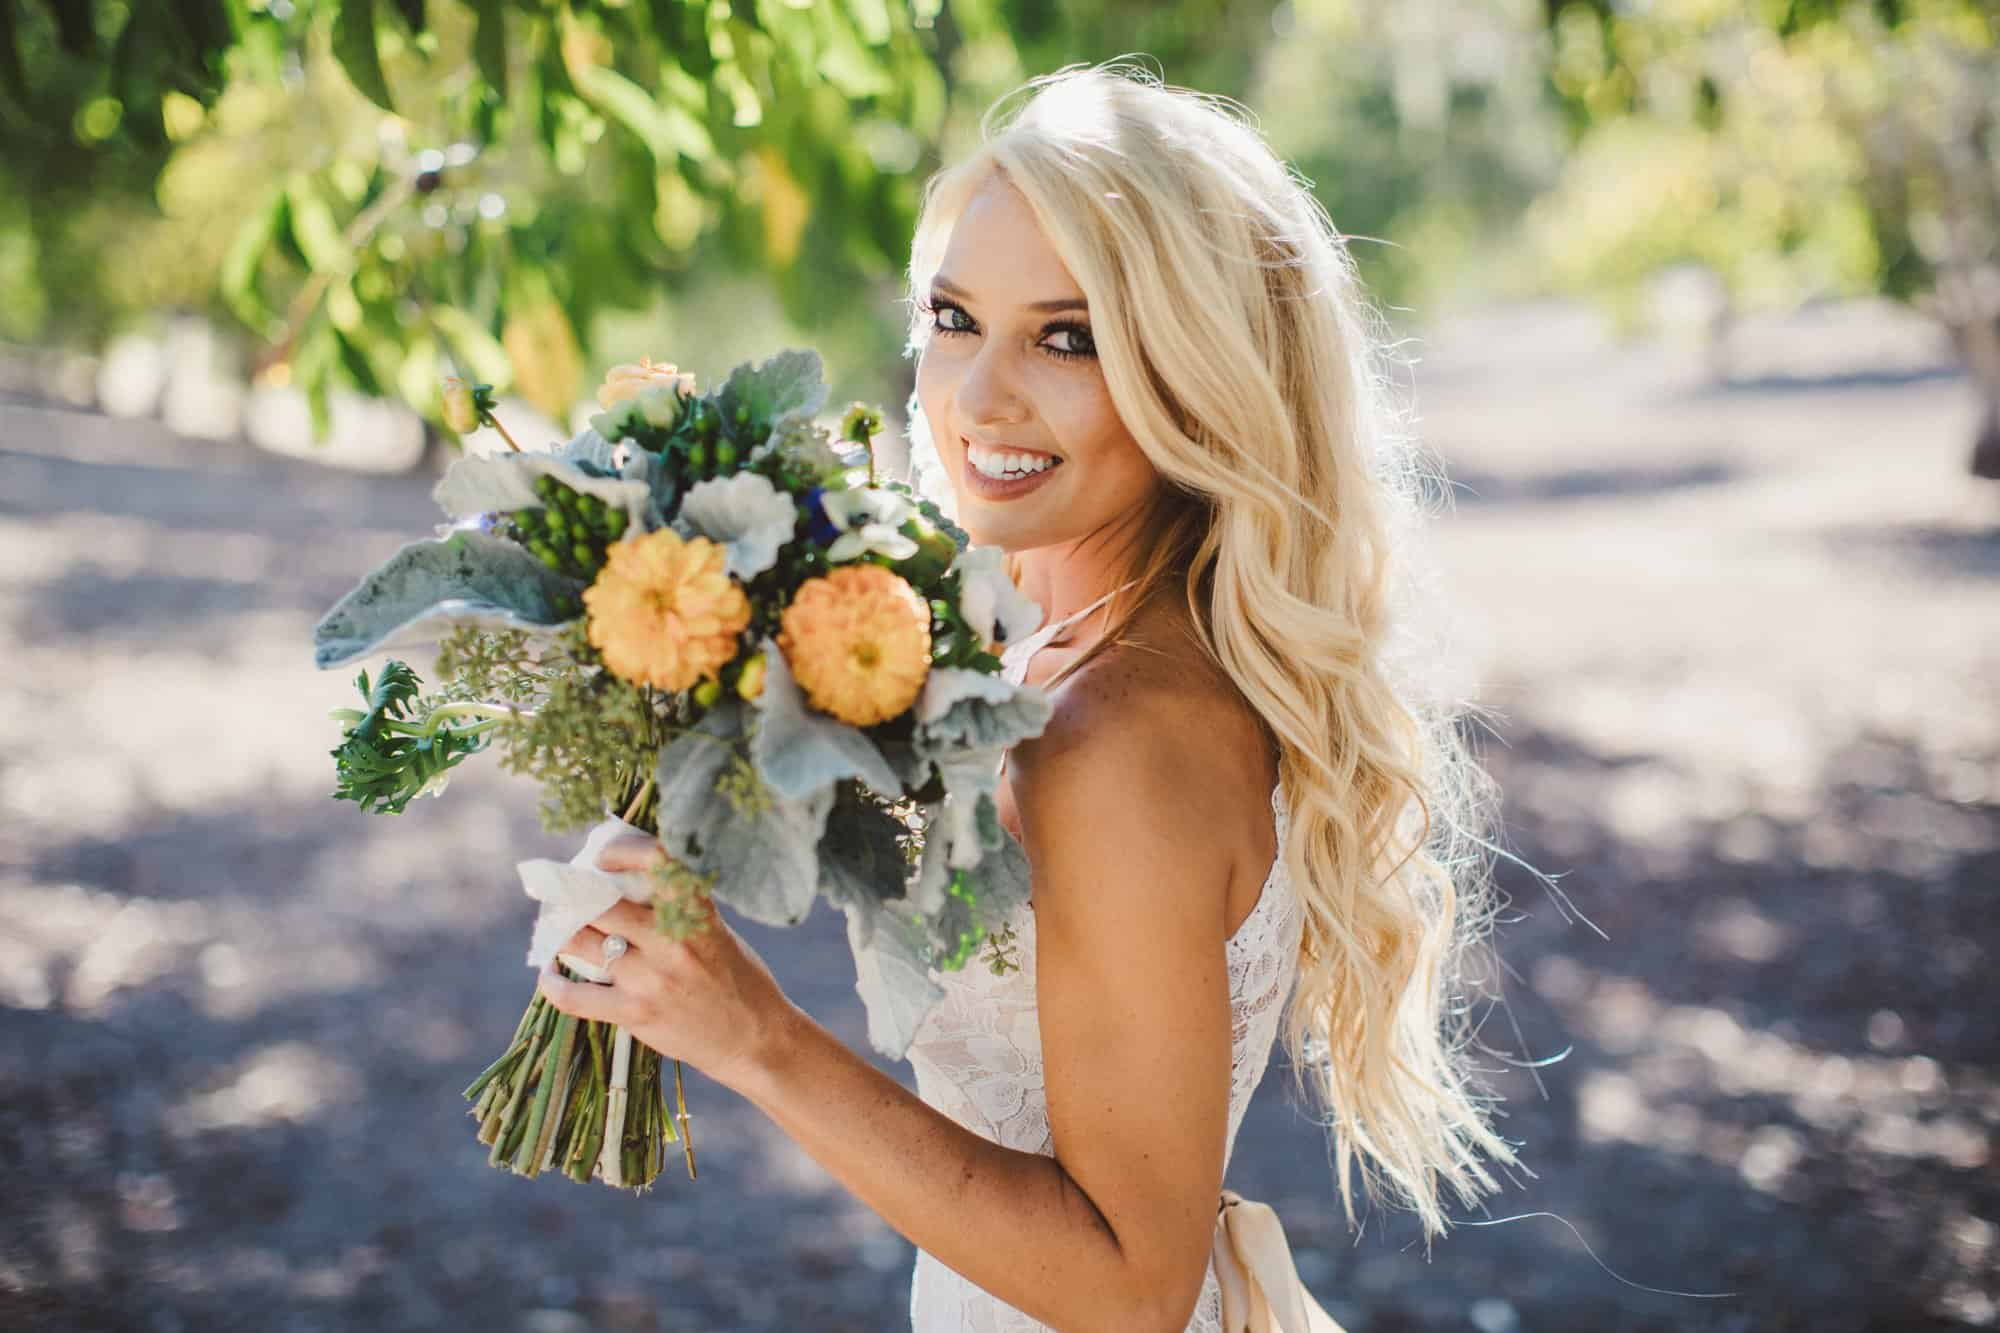 opolo vineyards bride floral arrangement wedding